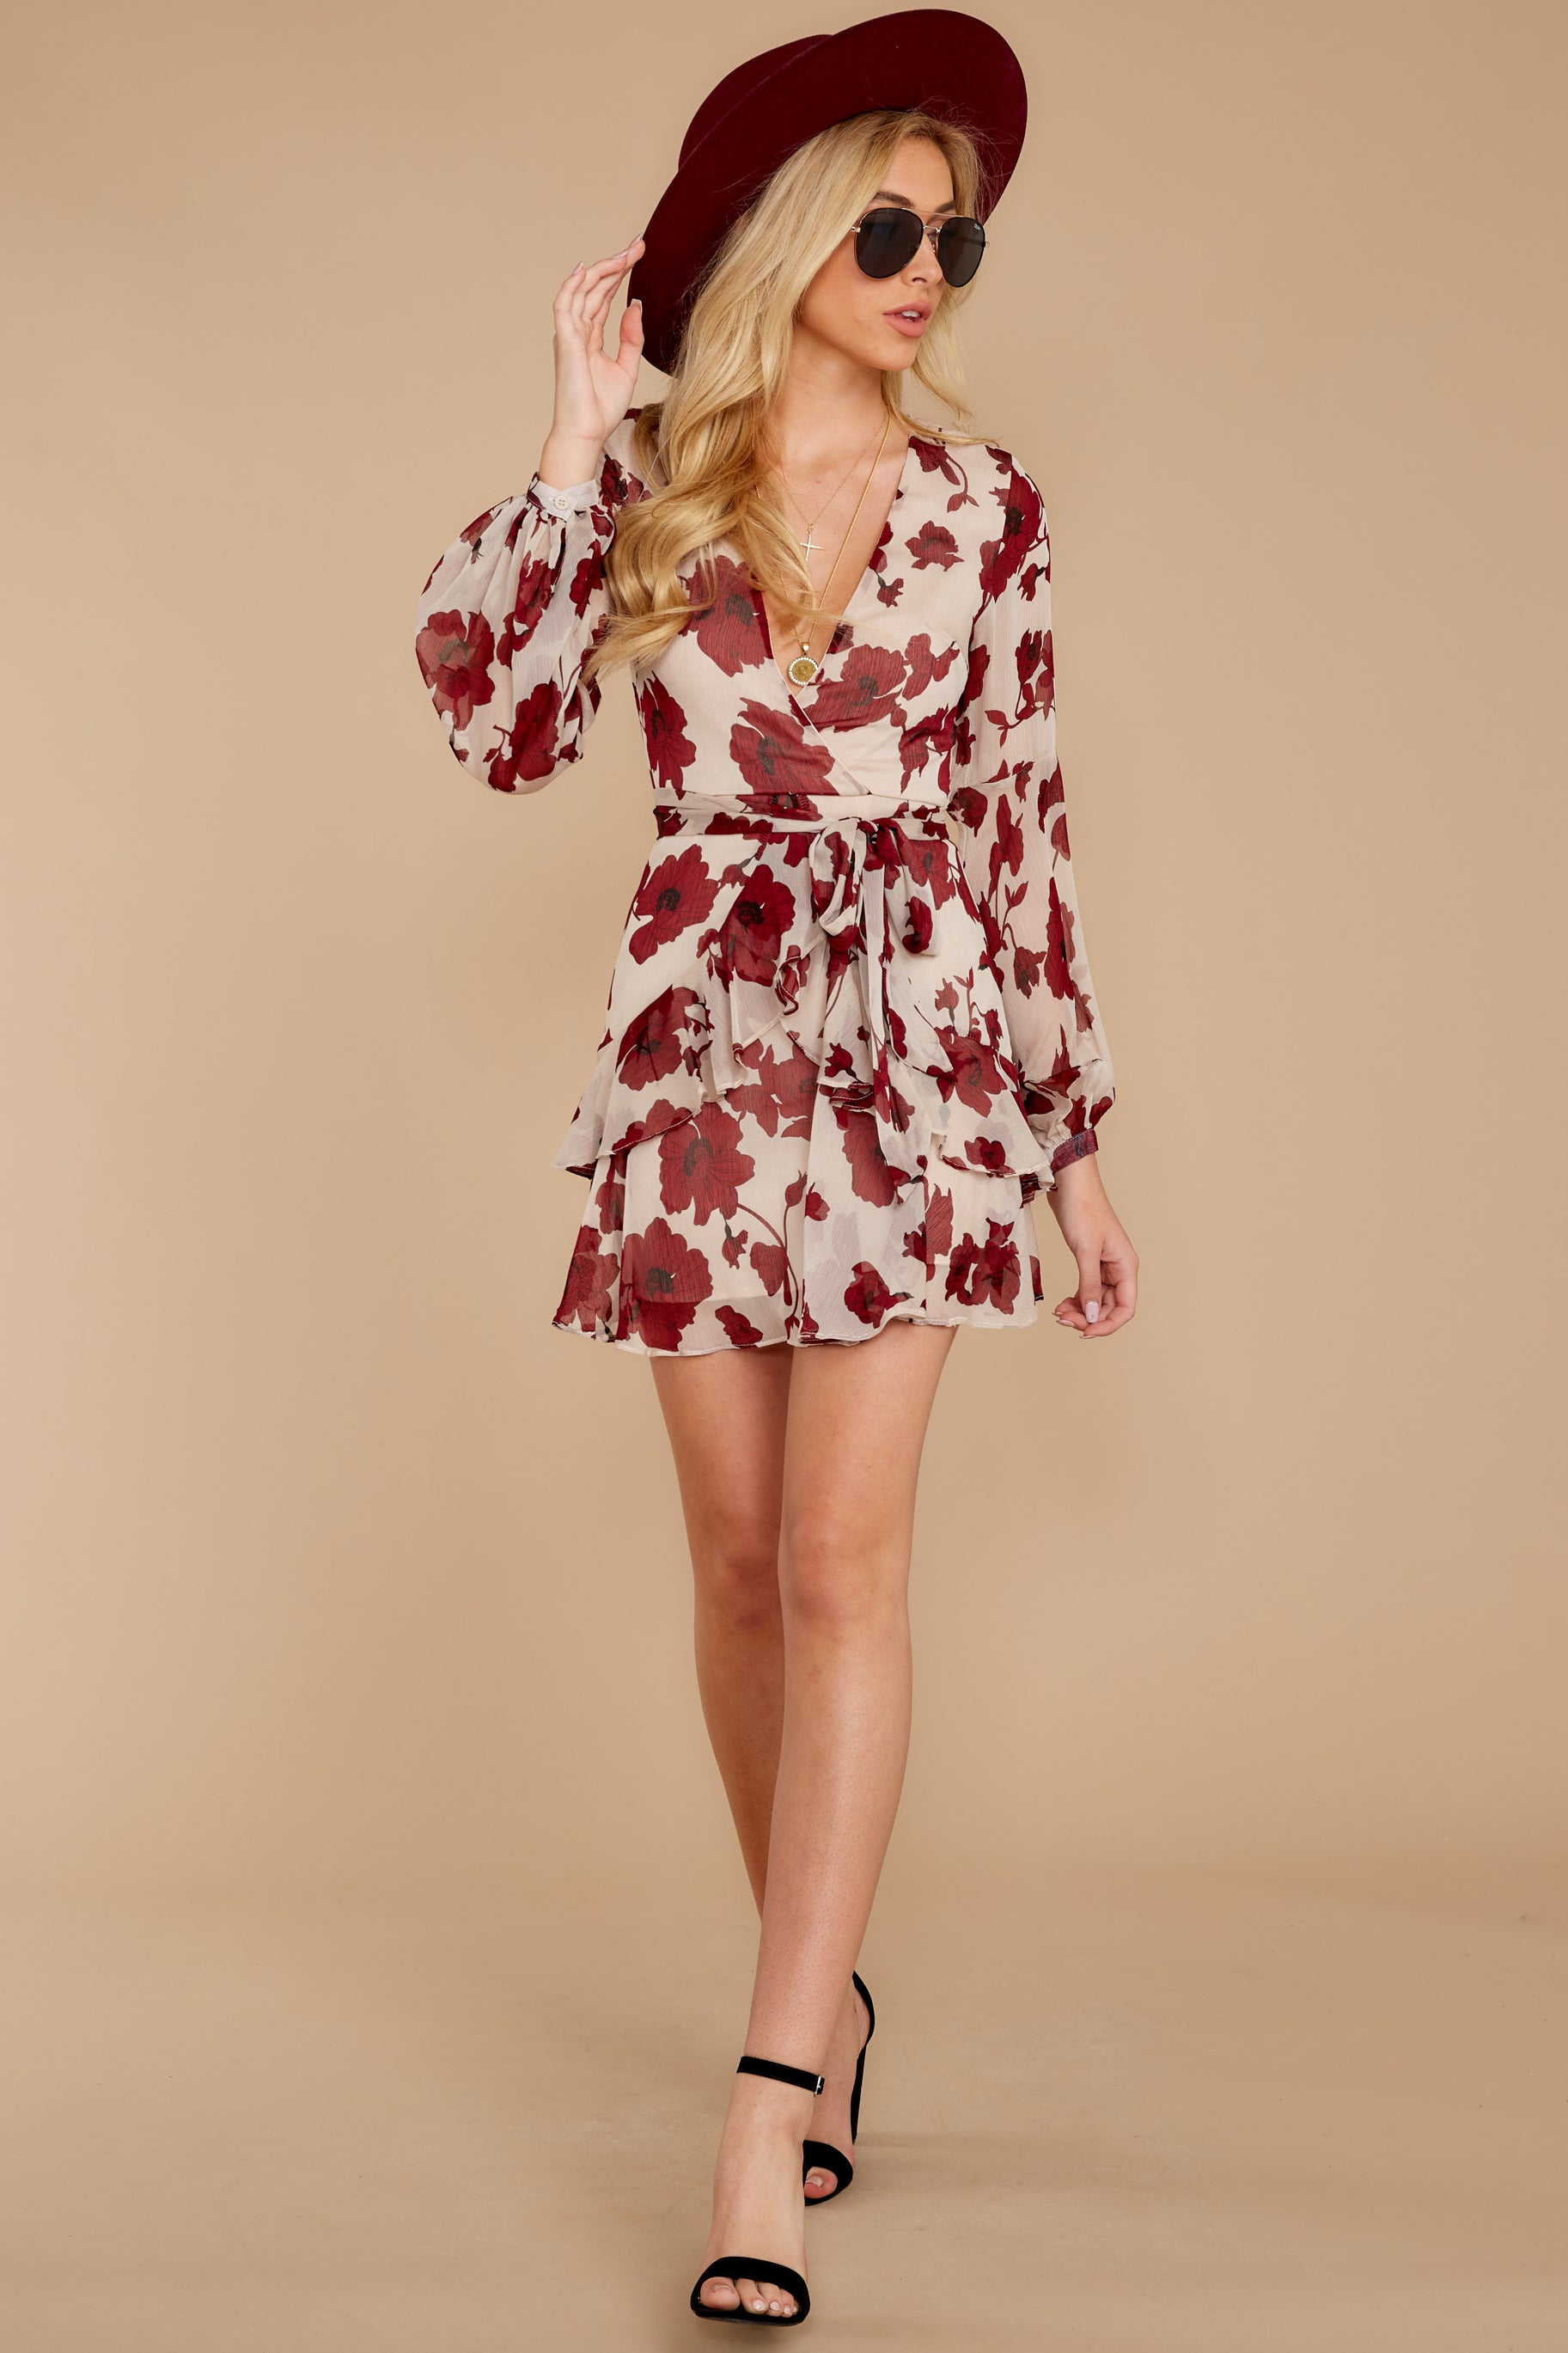 3 Simply Yours Burgundy Floral Print Dress at reddress.com